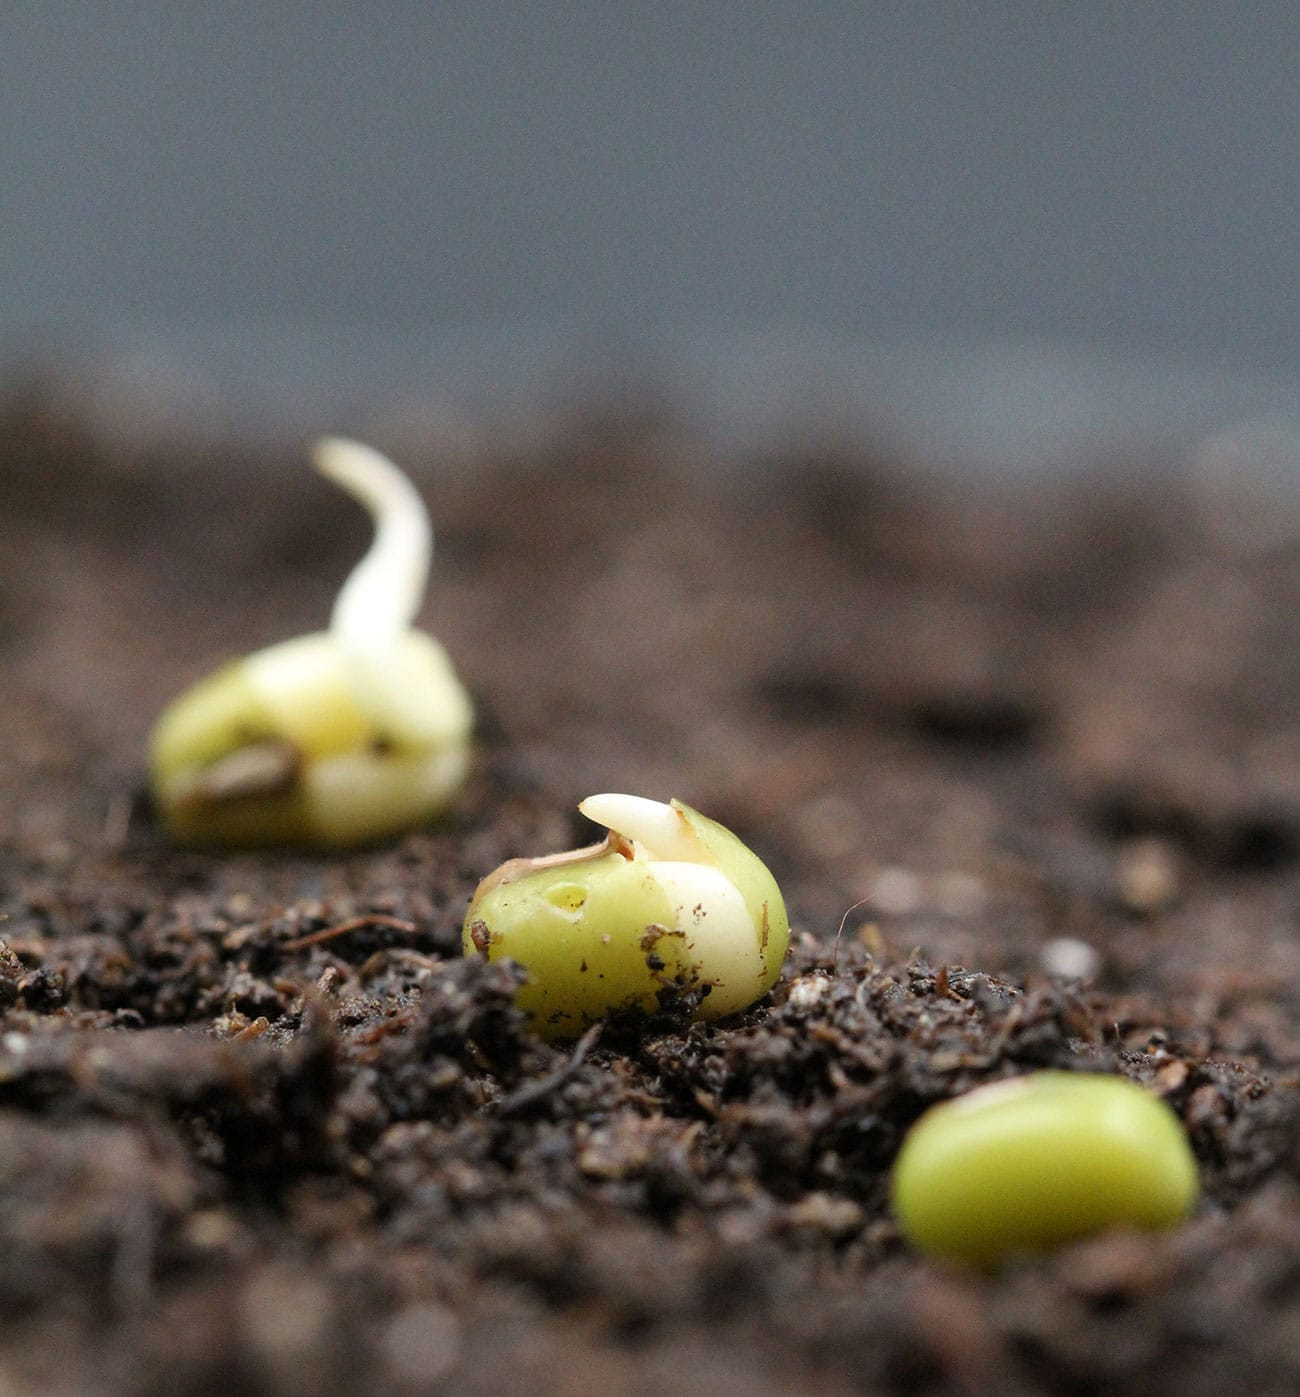 Shedding light on the earliest events of seed germination